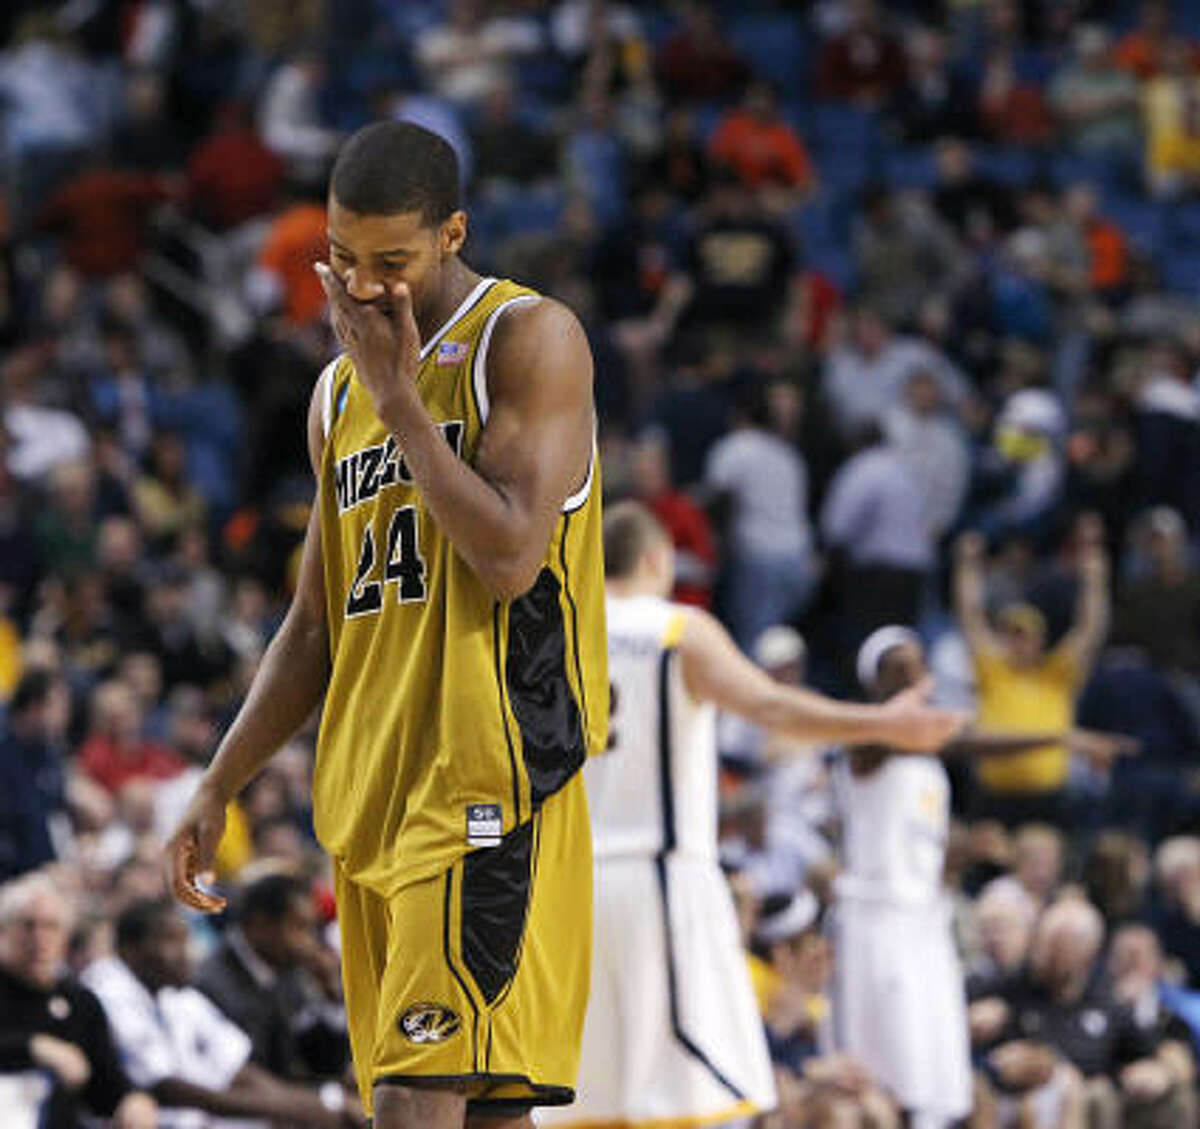 March 21: No. 2 West Virginia 68, No. 10 Missouri 59 Missouri guard Kim English walks off the court after losing to West Virginia 68-59.